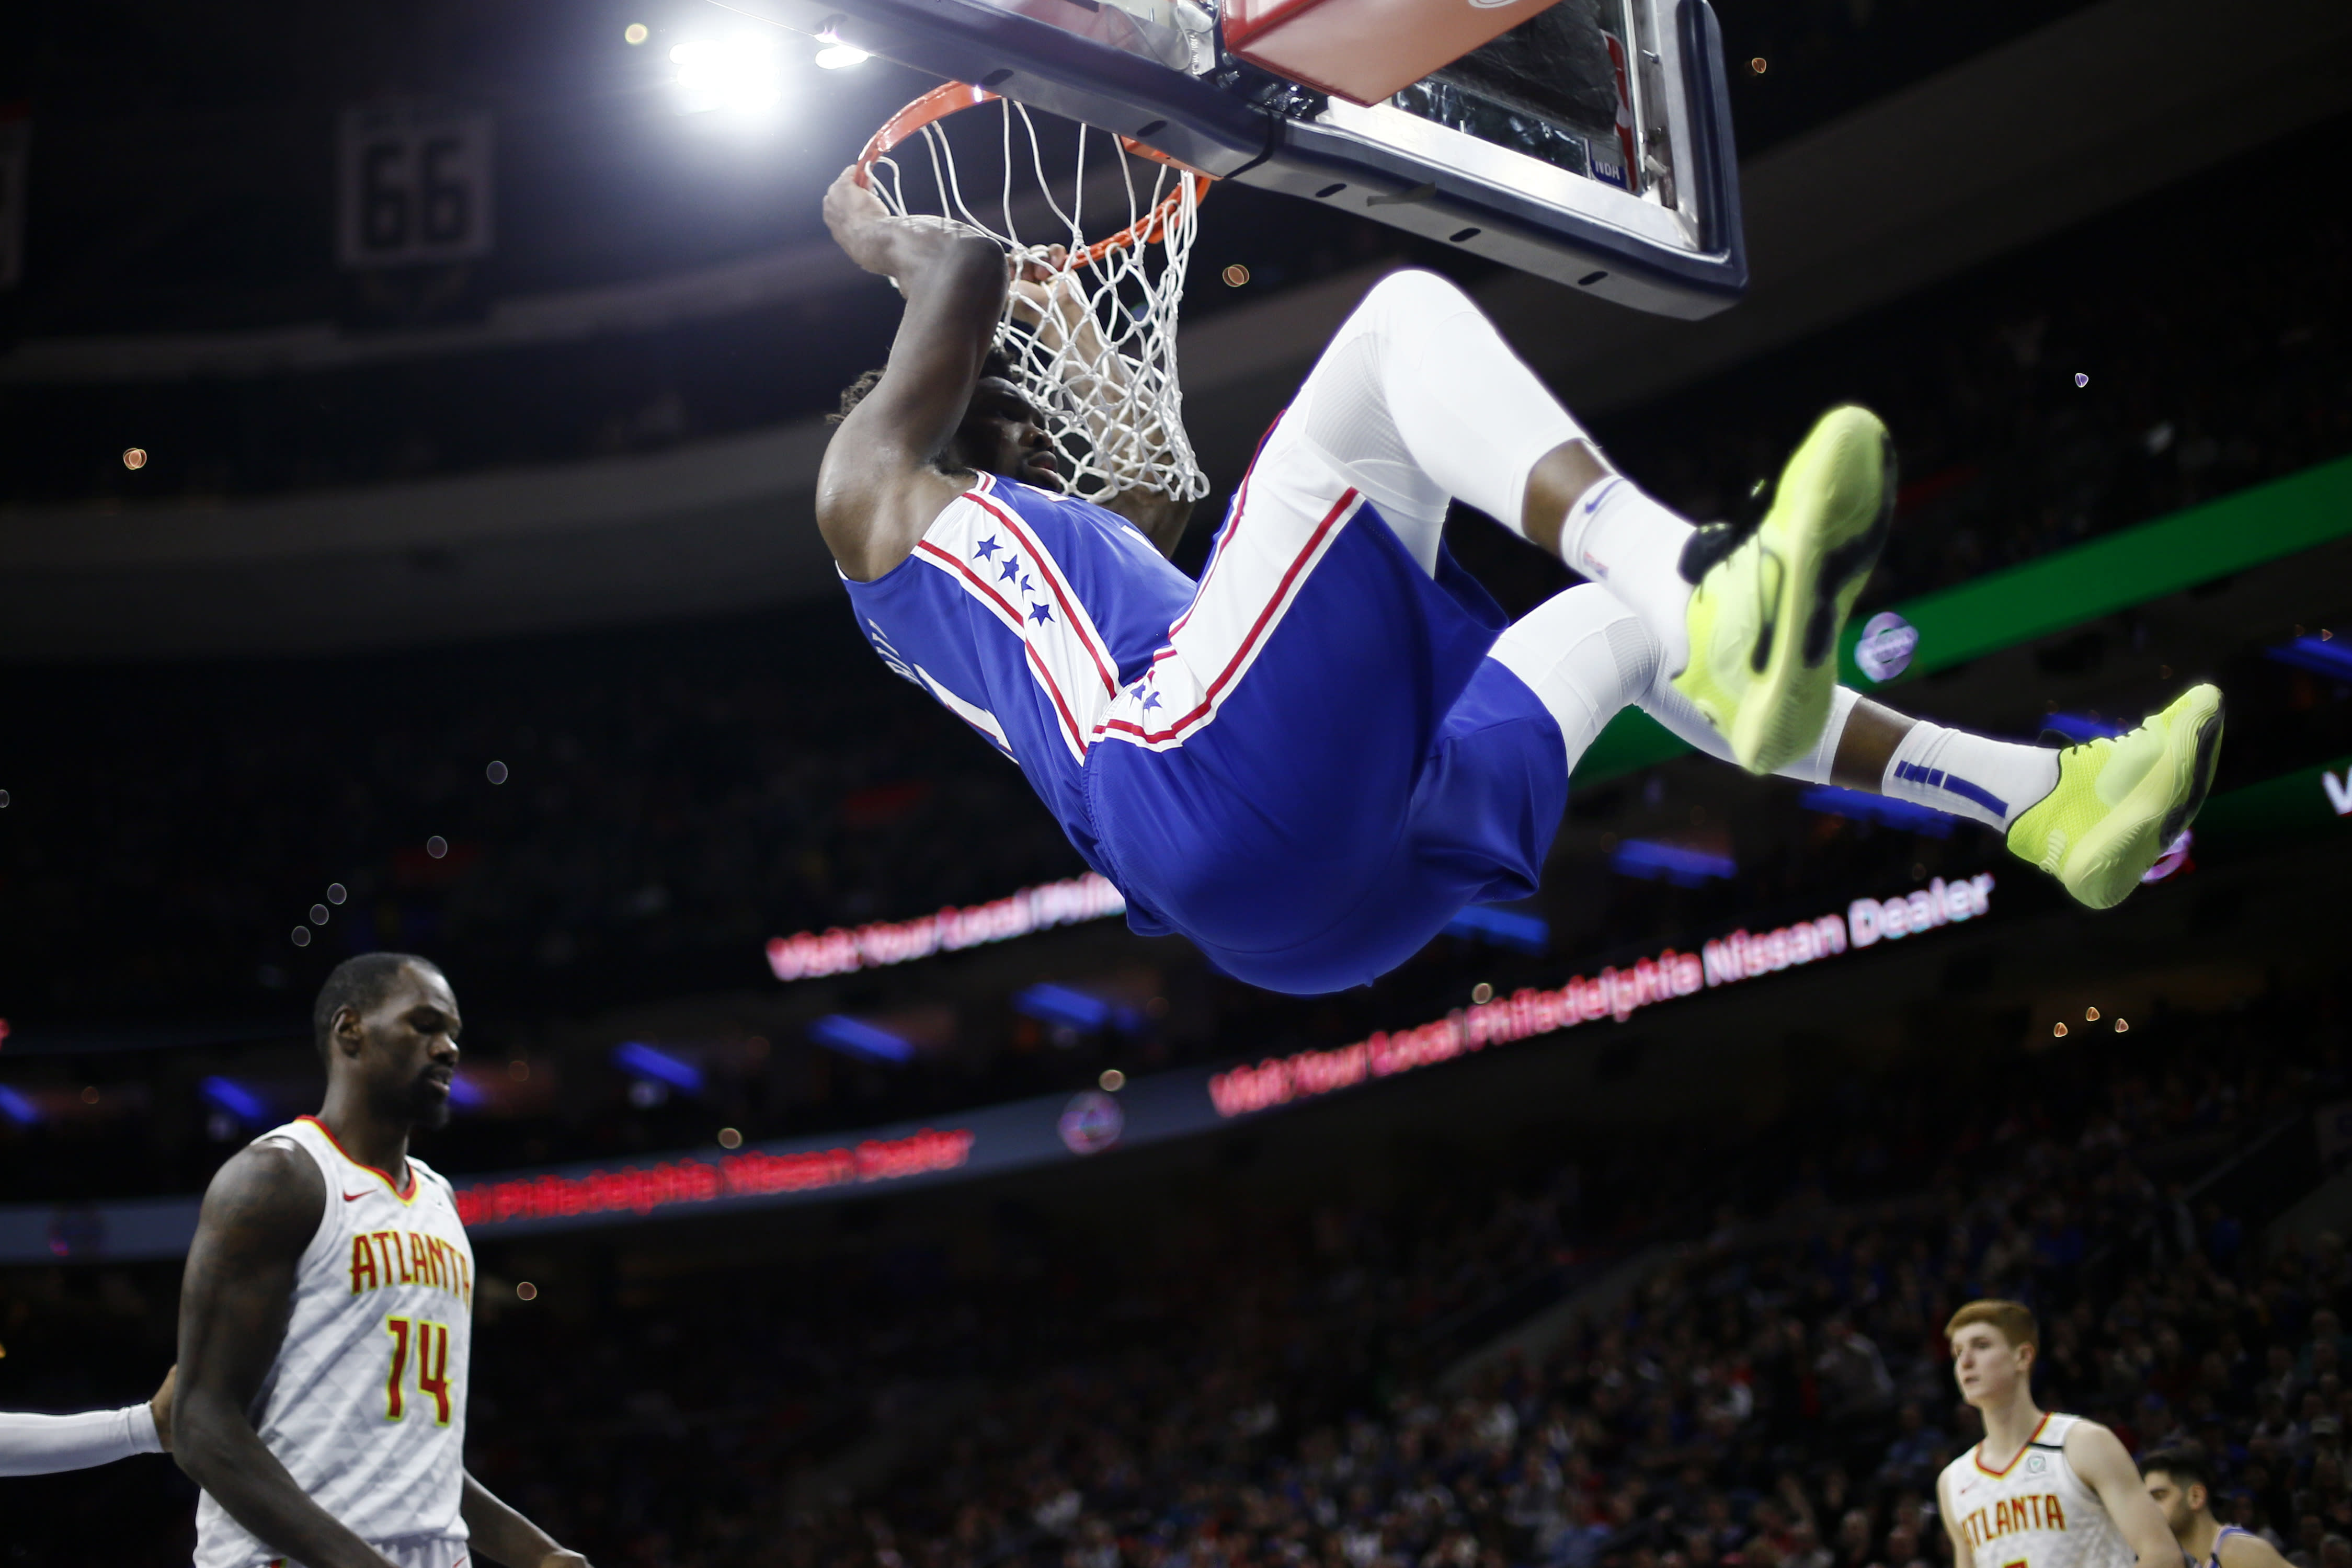 FILE - In this Feb. 24, 2020, file photo, Philadelphia 76ers' Joel Embiid, top, hangs from the rim after a dunk past Atlanta Hawks' Dewayne Dedmon during the second half of an NBA basketball game in Philadelphia. Embiid is hurting, and that's a cause for concern as the 76ers get set to restart their season this week. The All-Star starting center sat out Philadelphia's scrimmage against Oklahoma City on Sunday, July 26, 2020, with right calf tightness, something 76ers coach Brett Brown hopes is merely a minor blip. (AP Photo/Matt Slocum, File)